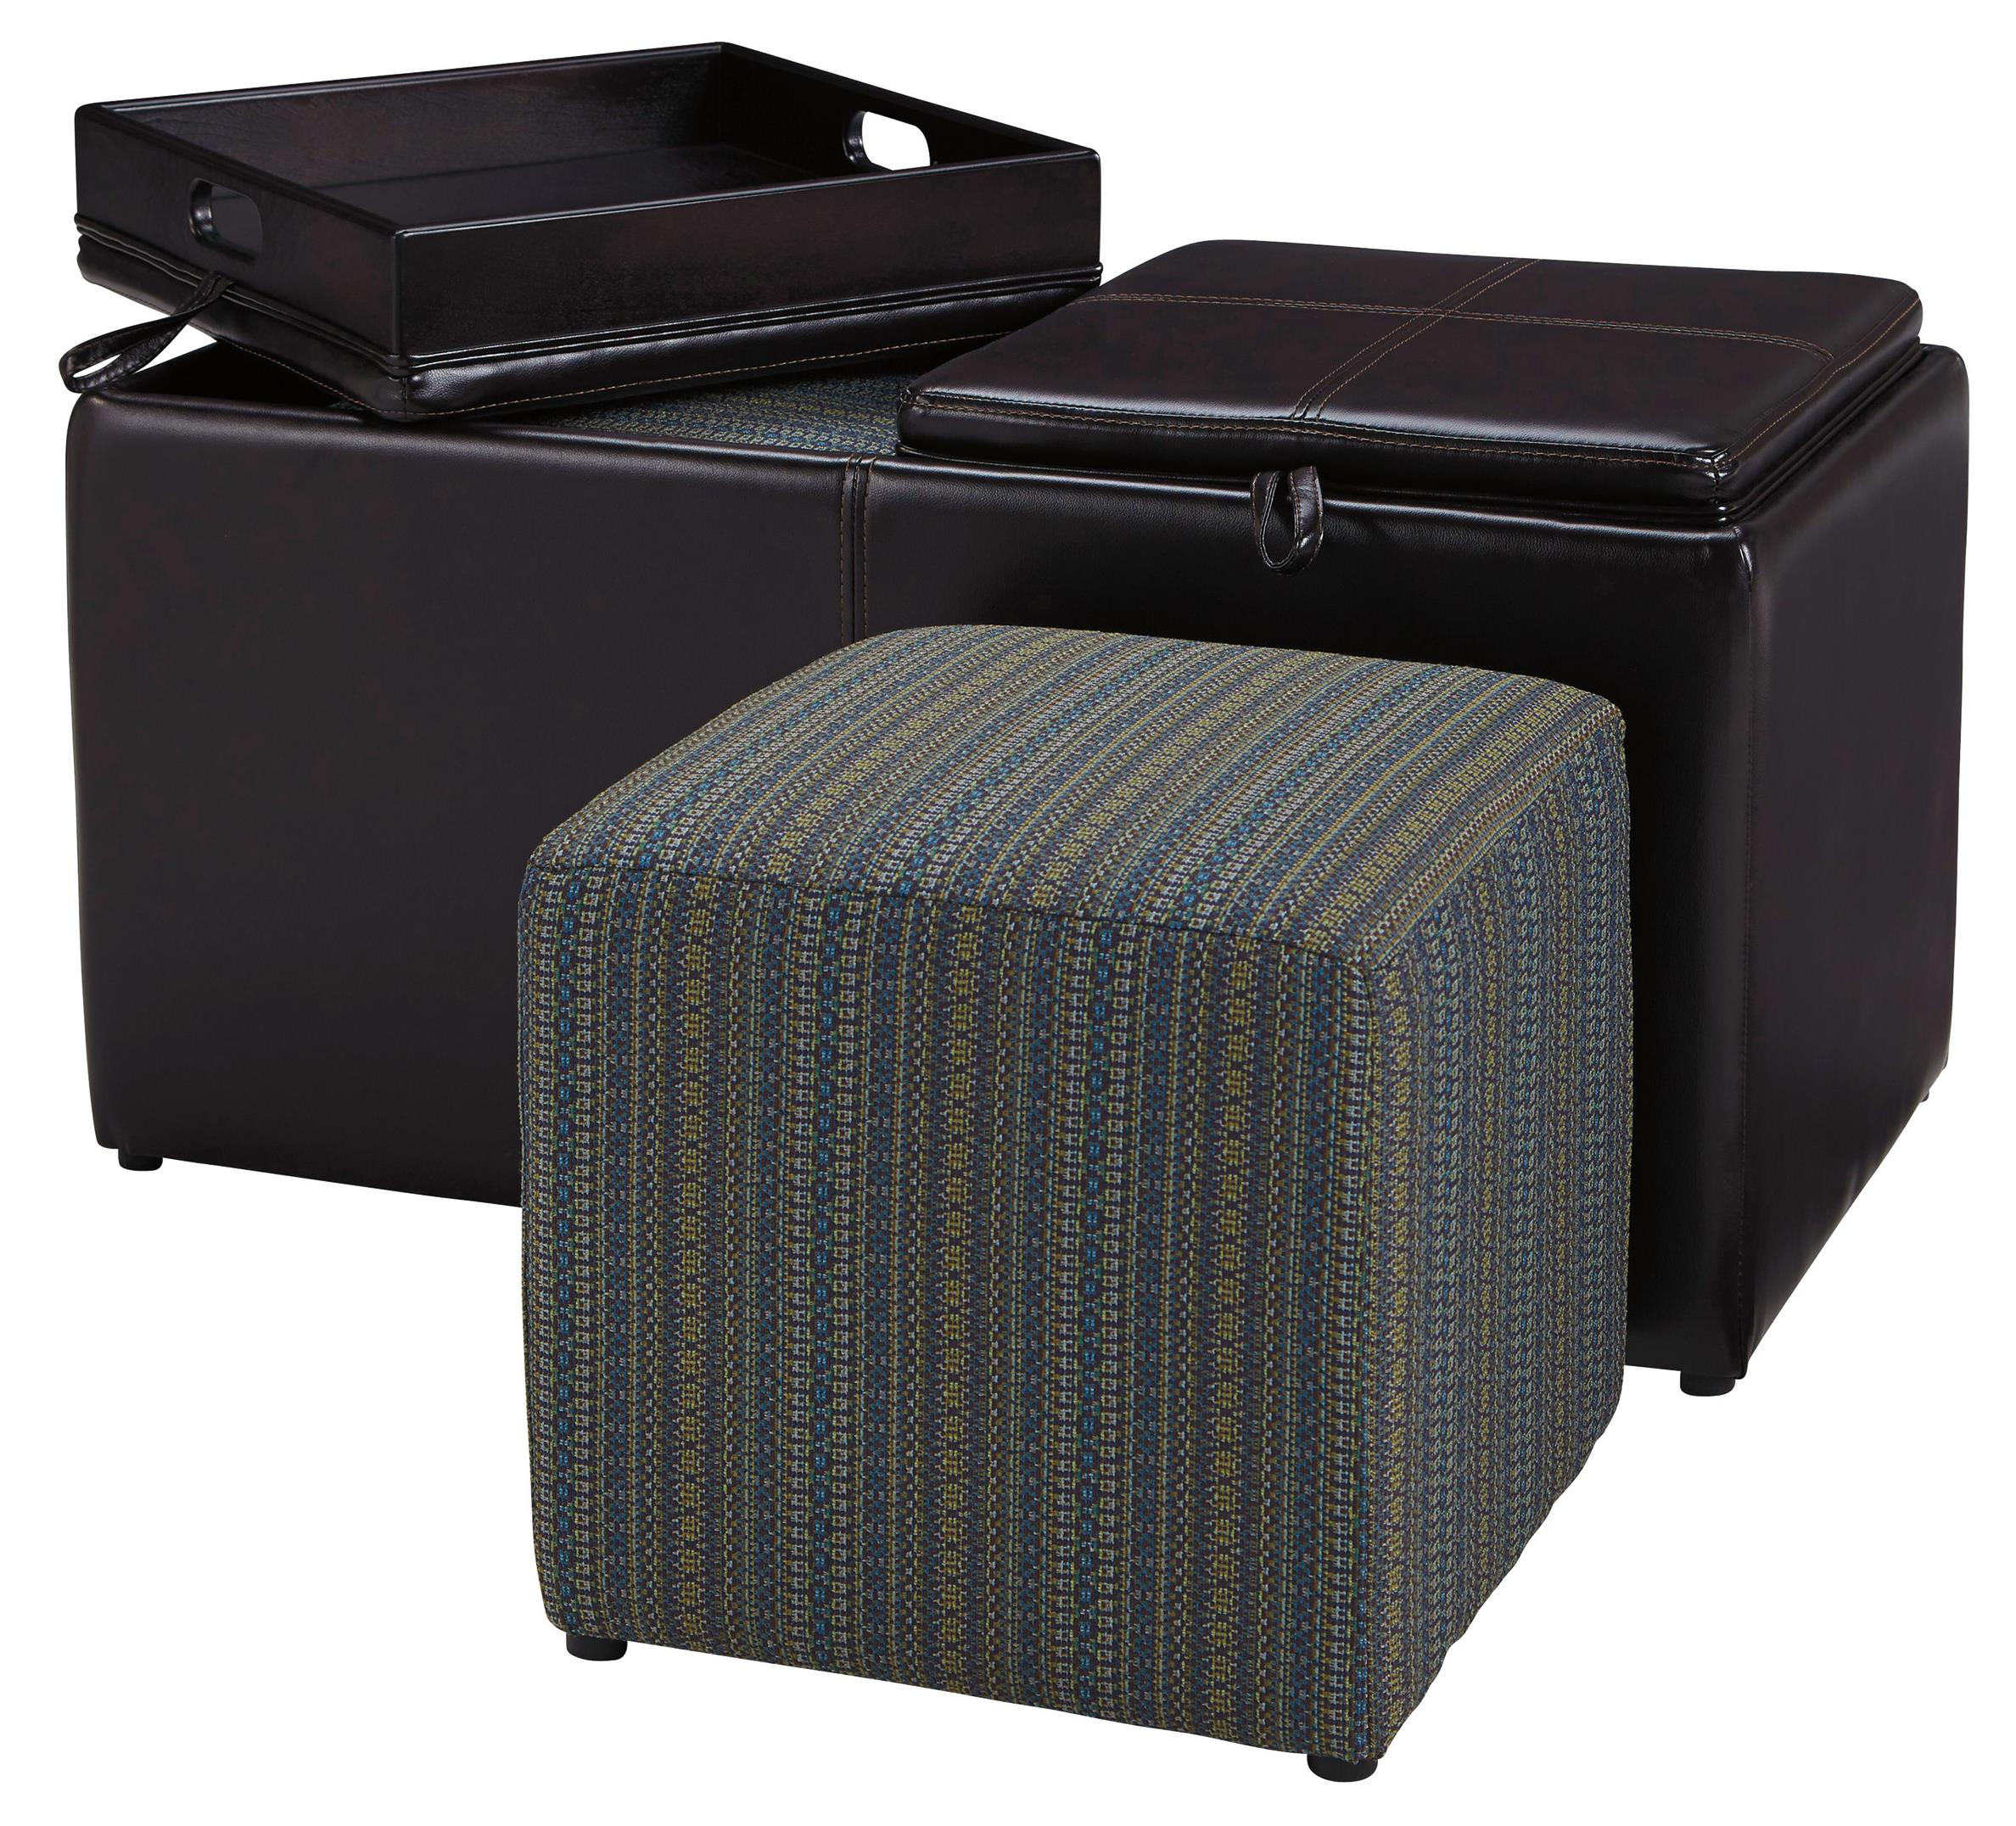 Benchcraft Casheral Ottoman With Storage - Item Number: 8290111